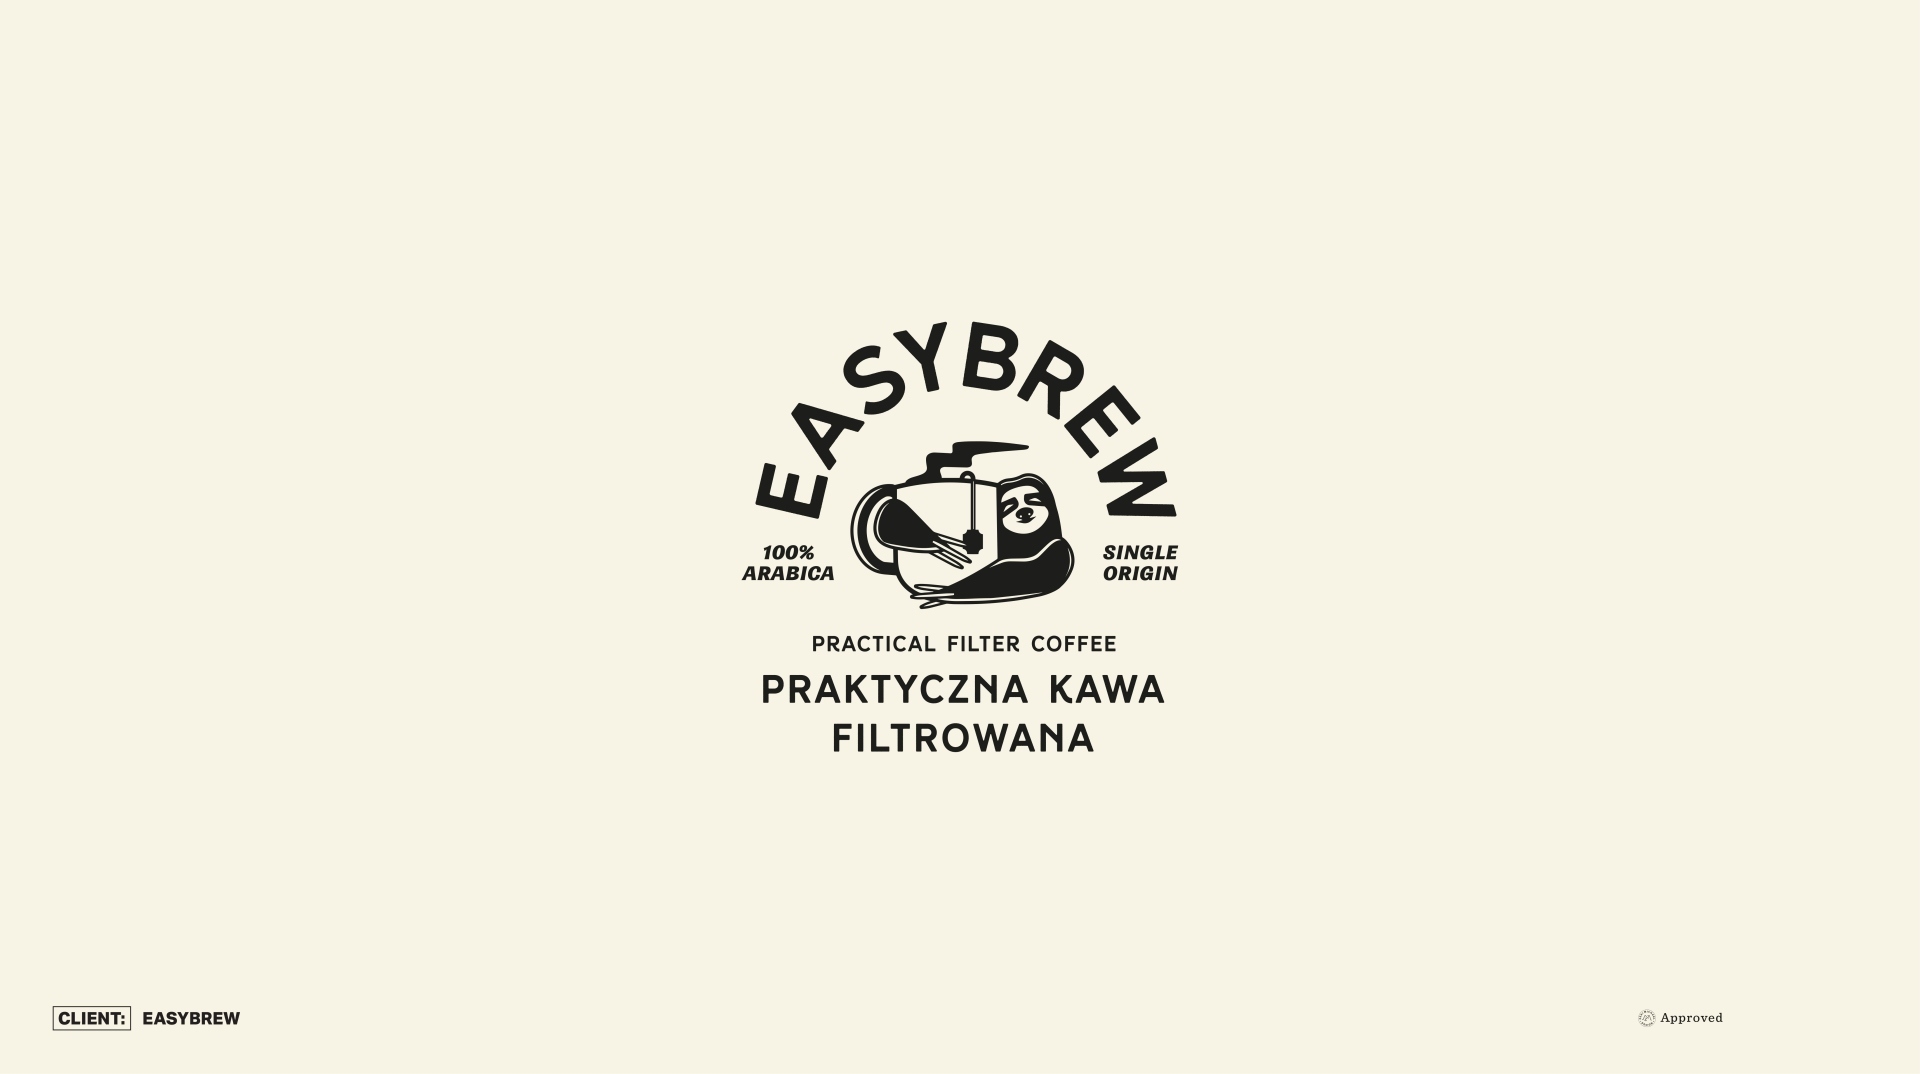 easy-brew-logo-designer-craft-fashion-stylish-vintage-retro-modern-contemporary-zeki-michael-british-turkish-designer-istanbul-lake-district-freelance-packaging-branding-keskin-denver-colorado-austin-texas-06 copy